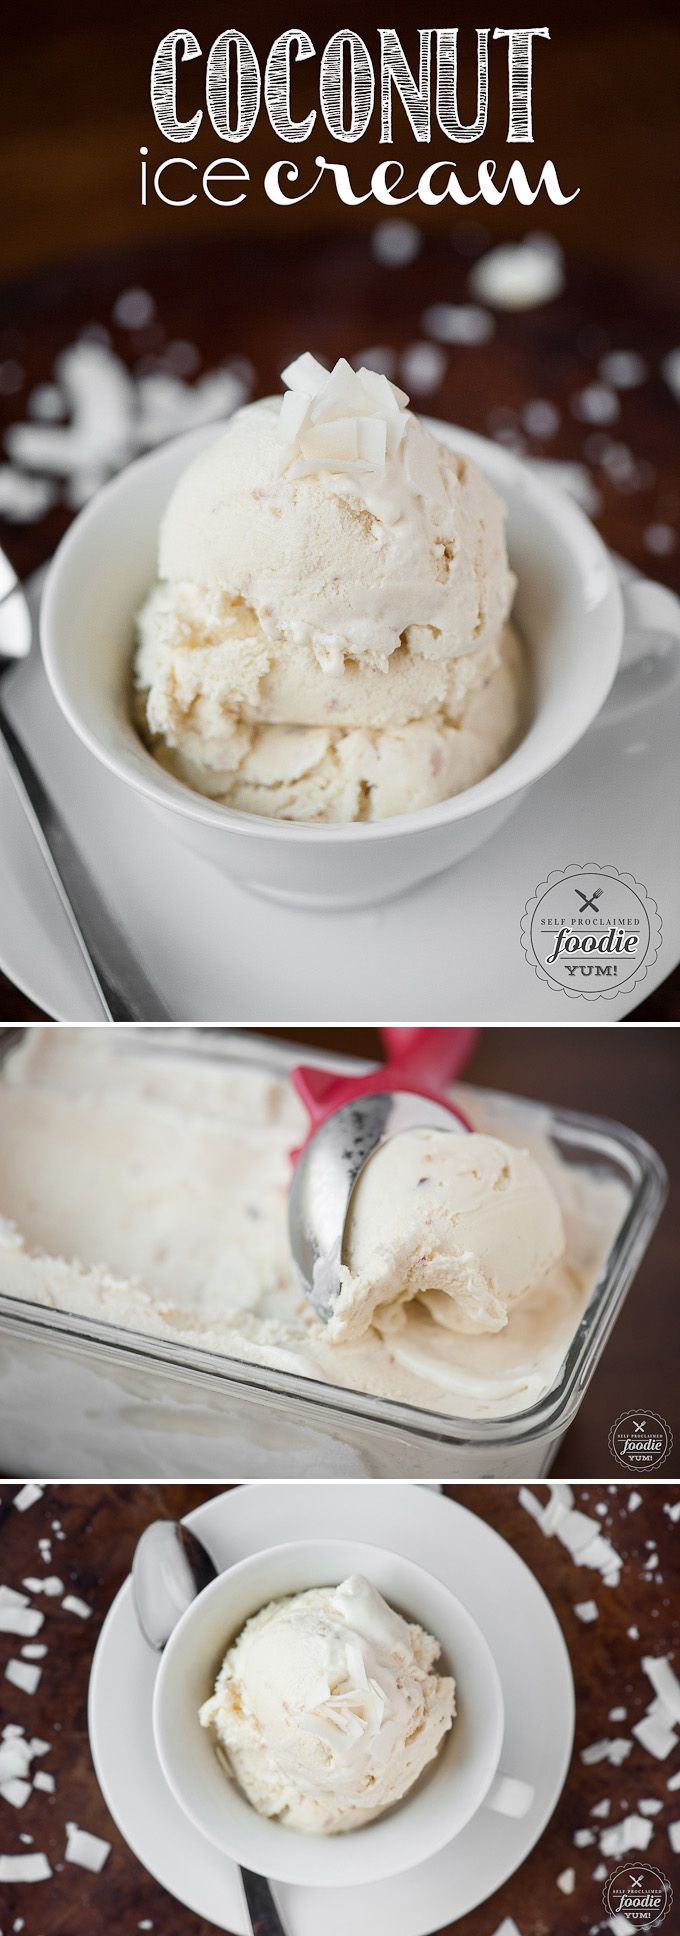 Coconut Ice Cream - Self Proclaimed Foodie